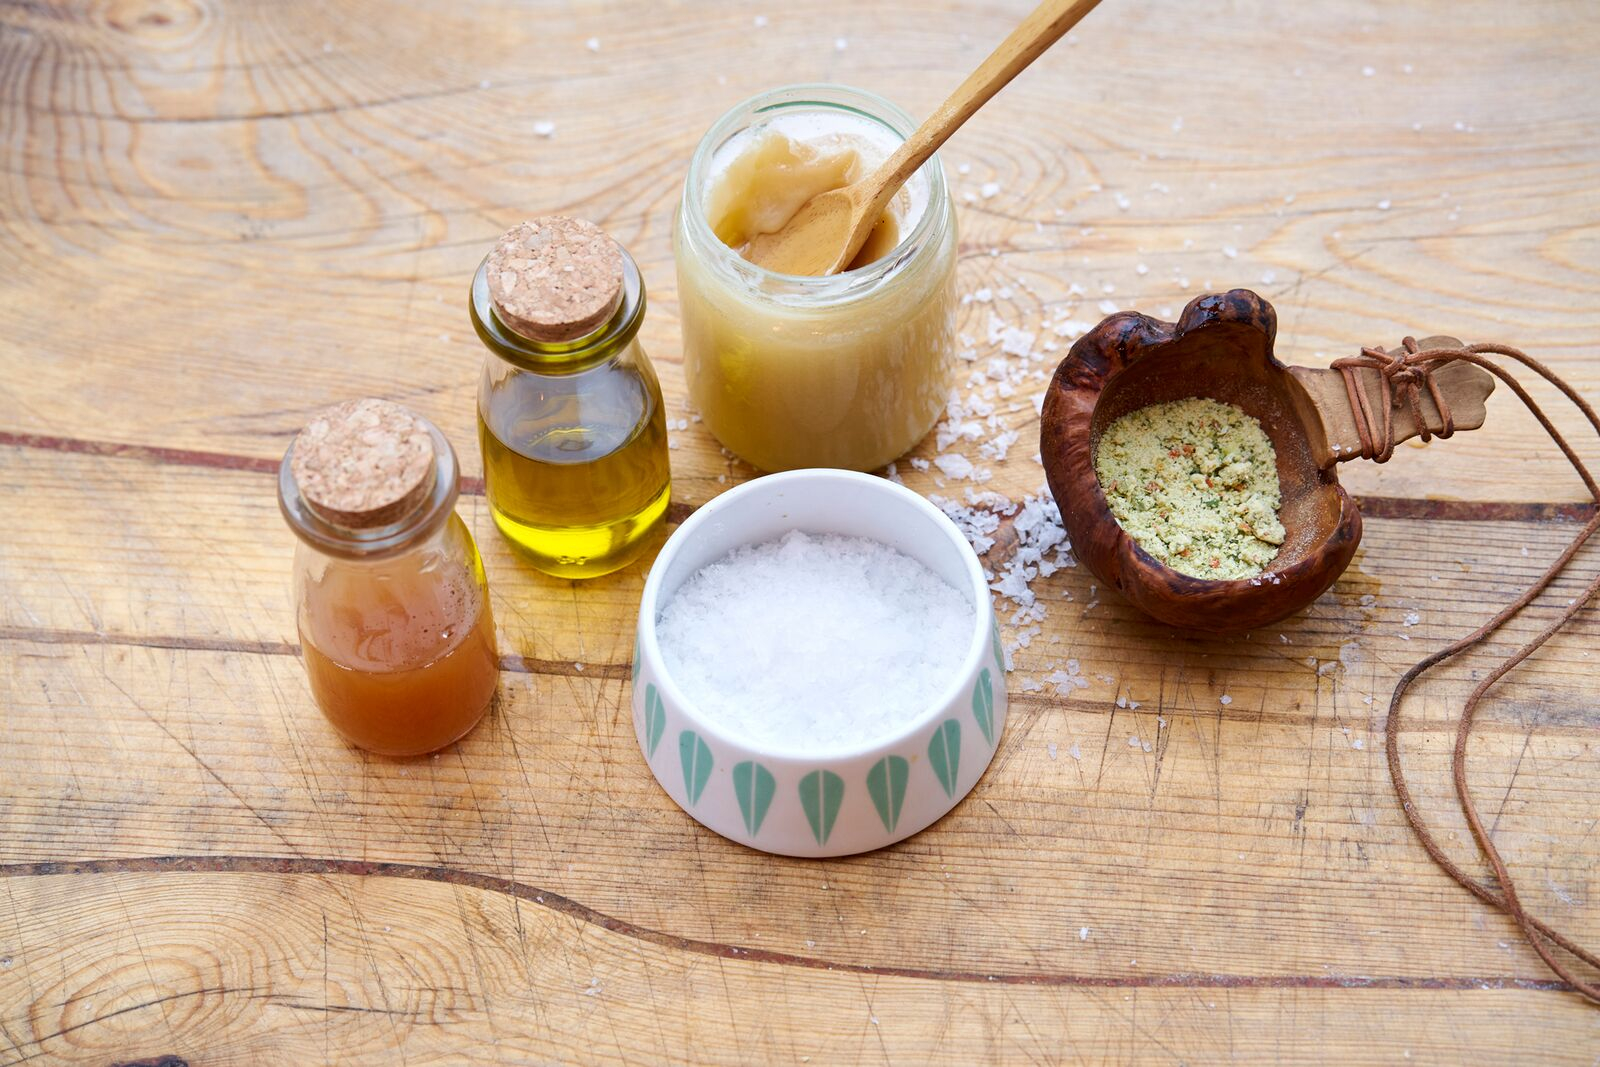 Basic kit: Bullion / bone broth,sea-salt, butter and rapeseed oil, honey, apple-vinegar. Photo: Alexander Benjaminsen.